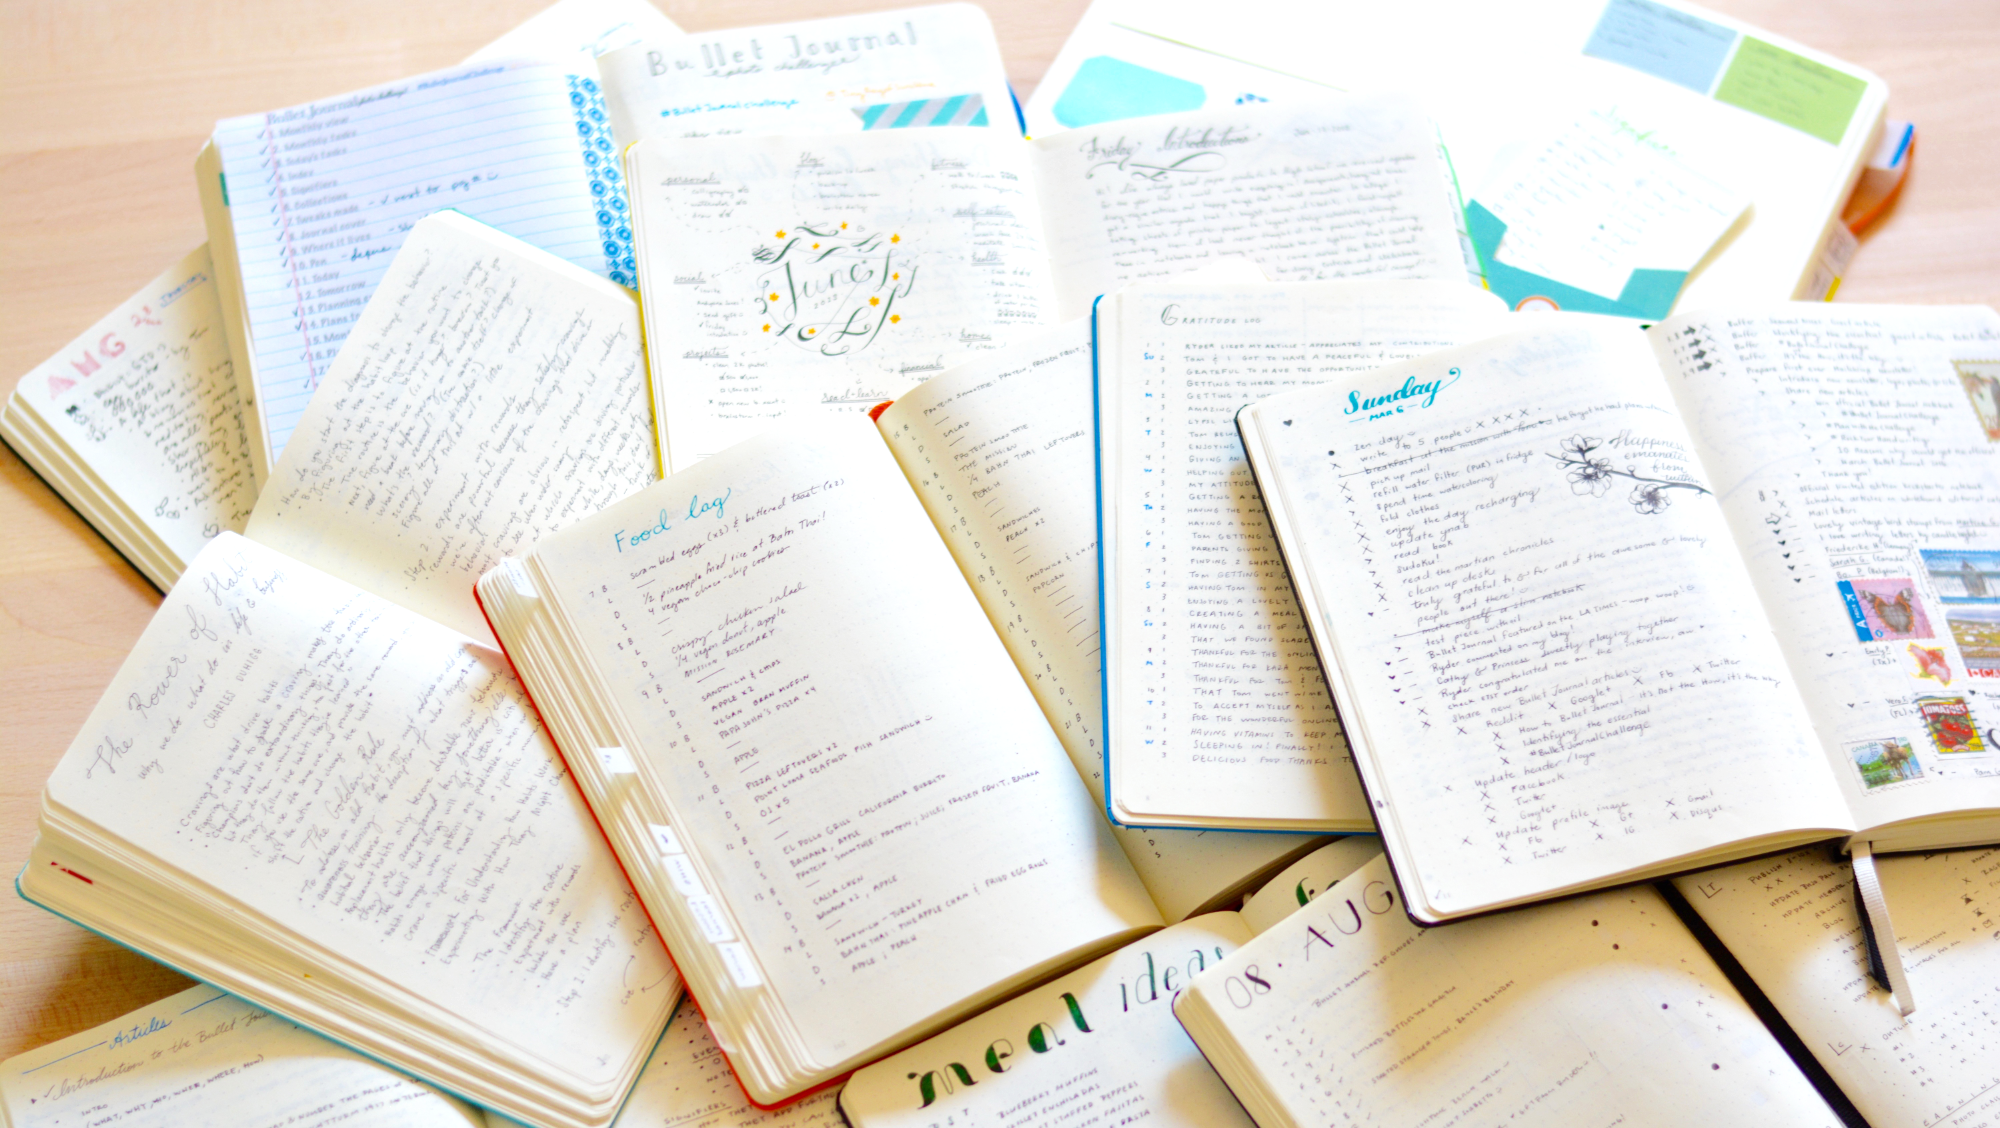 Thorough Guide to the Bullet Journal System \u2014 Tiny Ray of